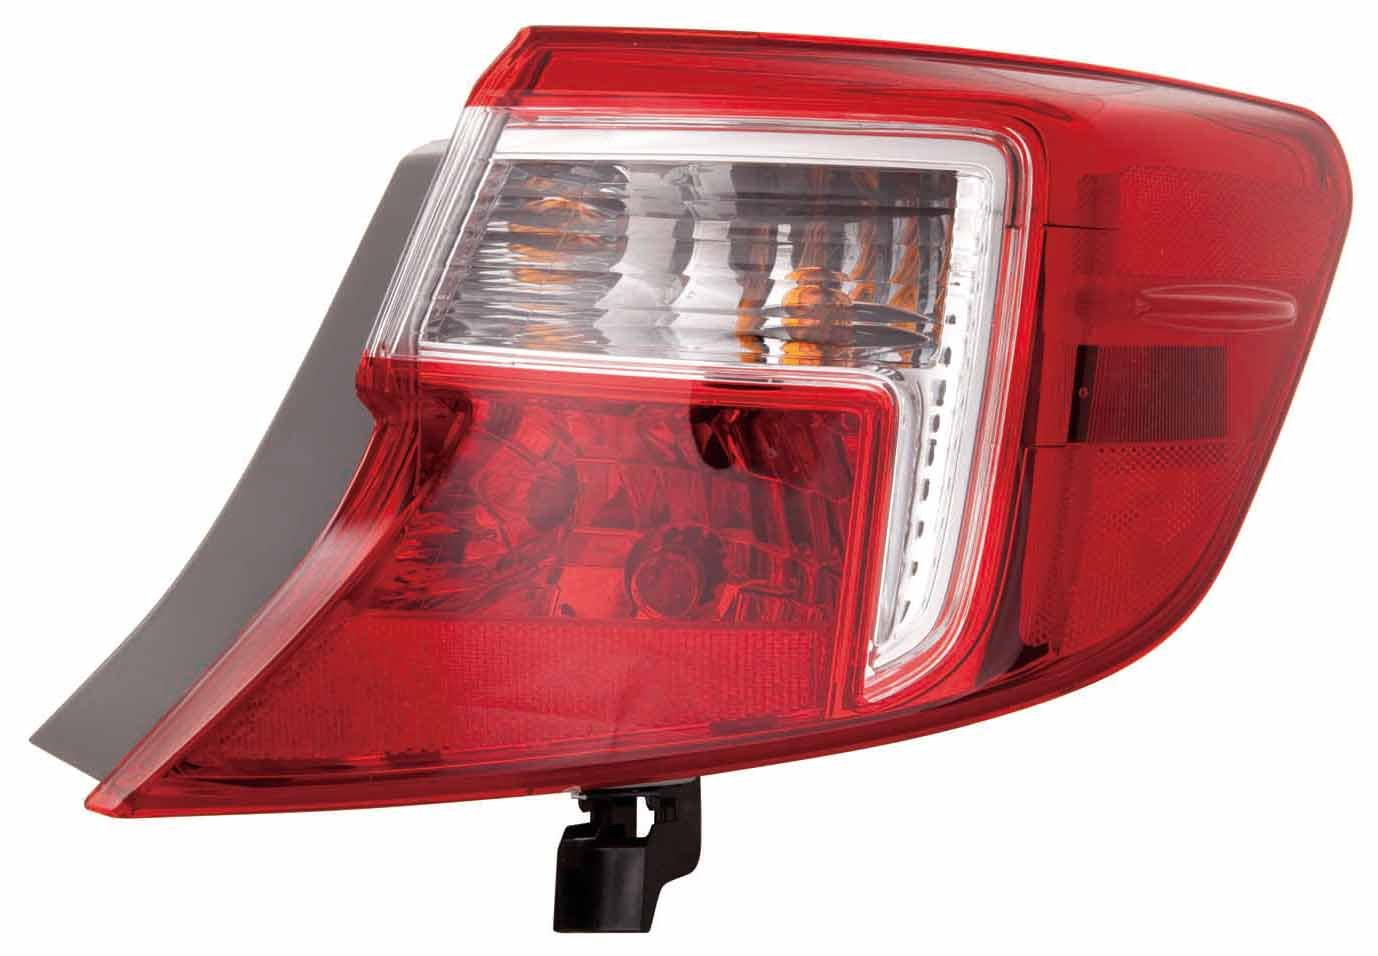 Amazon.com: Depo Toyota Camry Tail Lamp Assembly, Lado de ...